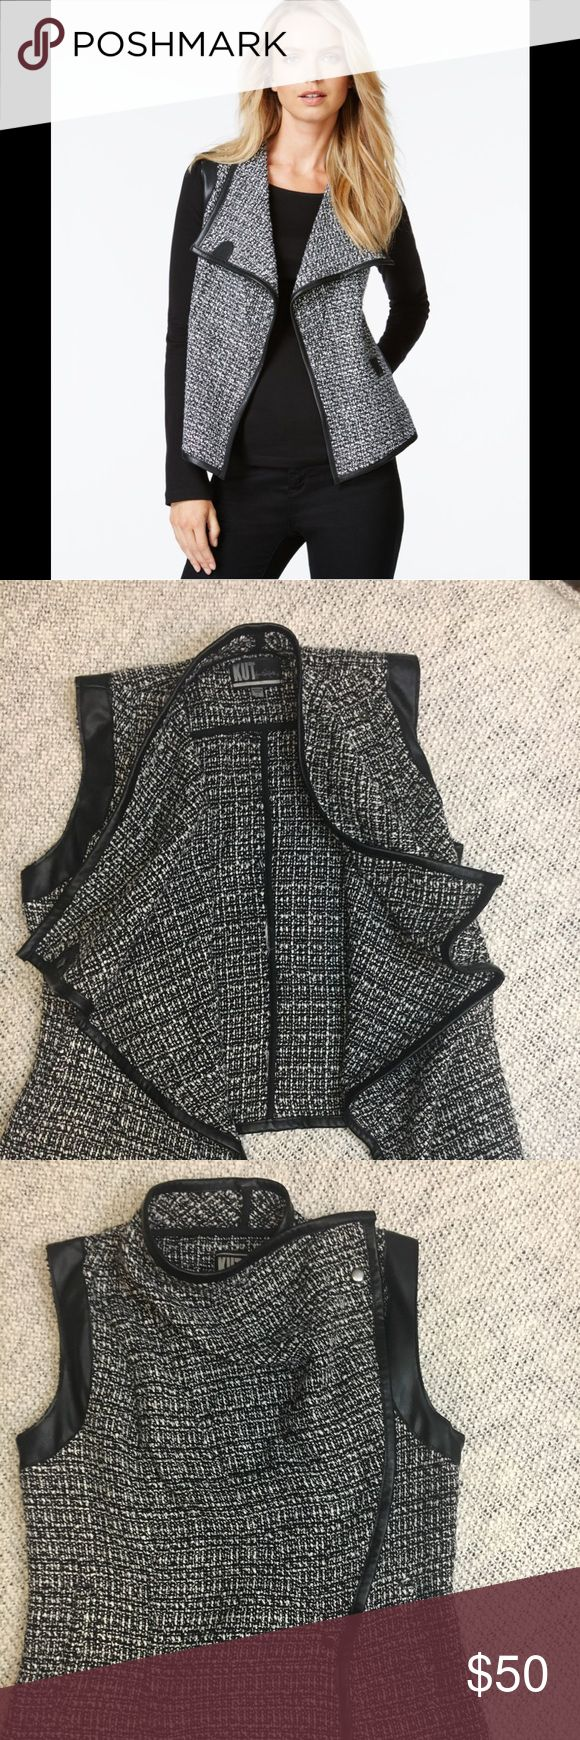 "Kut From The Kloth Black  Faux Leather trim Vest S Perfect on trend textured vest / faux leather trim on a black and grey textured material/ two snaps to create lots of versatility/ size small length 21"" across 17"" all measured on a flat lay Kut from the Kloth Jackets & Coats Vests"